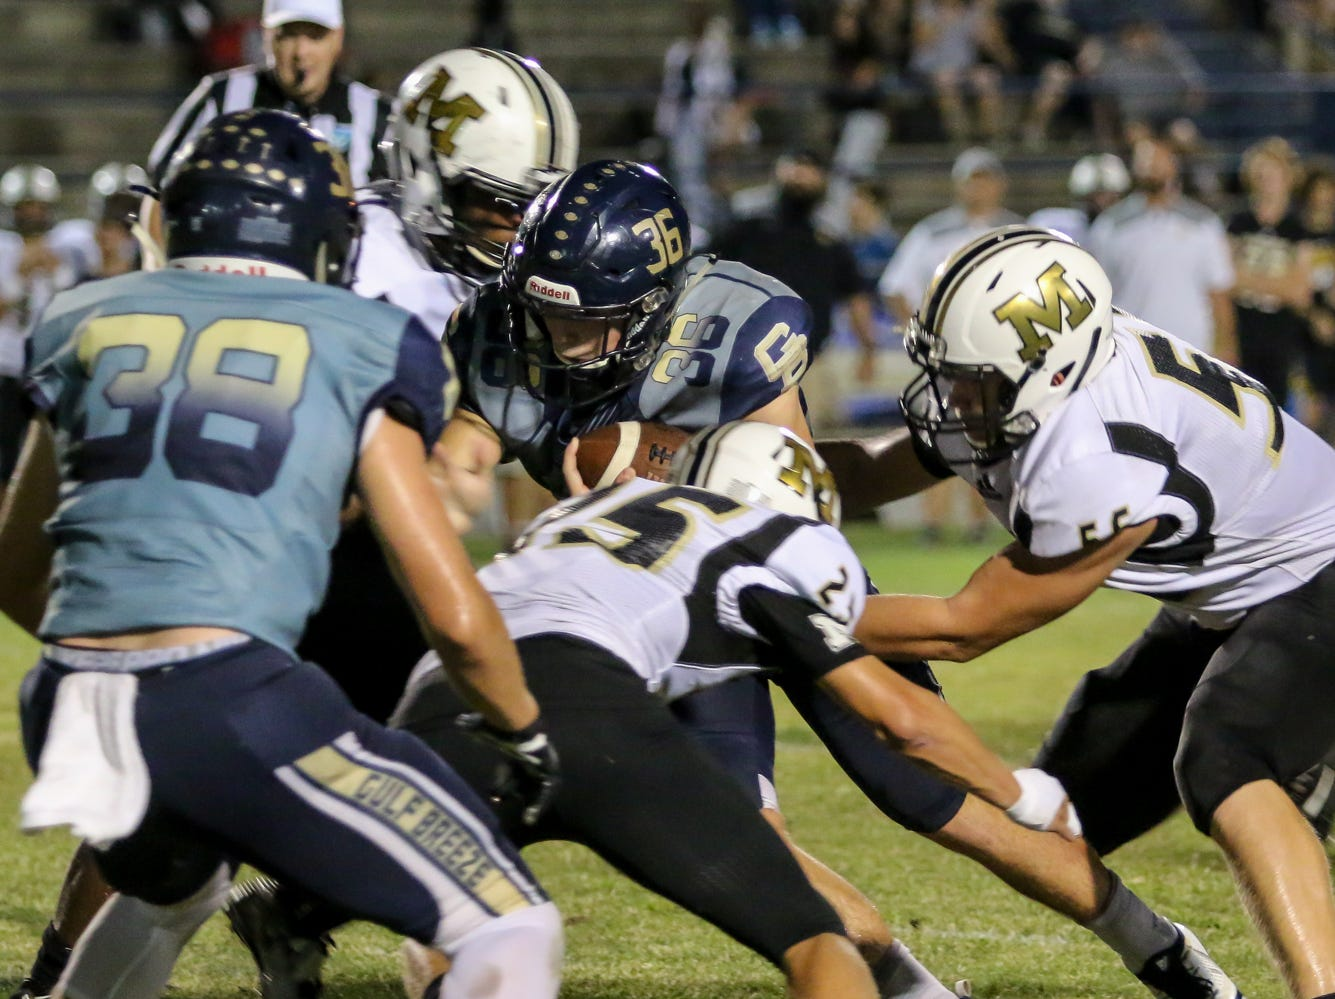 Gulf Breeze running back Tyler Dittmer (36) gains positive yards after catching a last minute backwards toss from backup quarterback Cooper Harris, not pictured, against Milton in the District 2-6A game at Gulf Breeze High School on Friday.